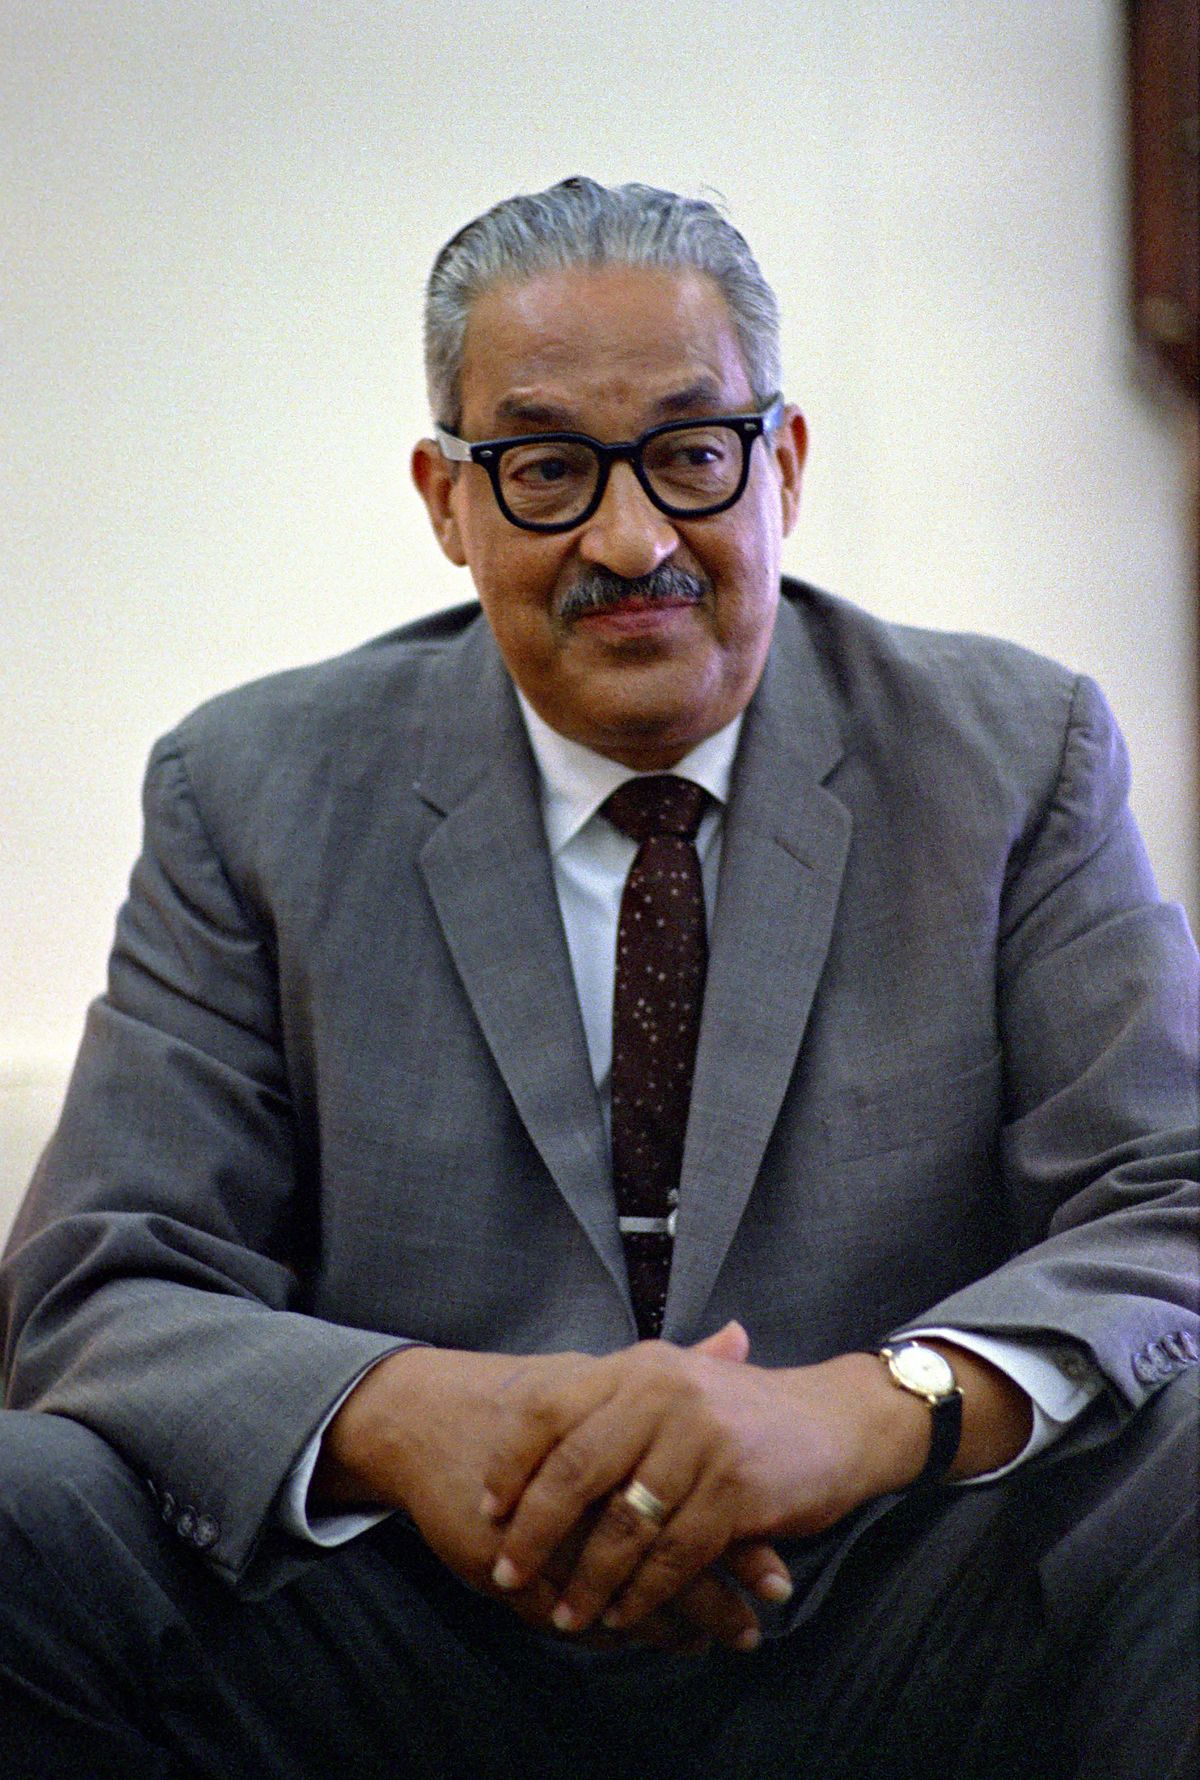 Thurgood Marshall Quotes Thurgood Marshall  Simple English Wikipedia The Free Encyclopedia